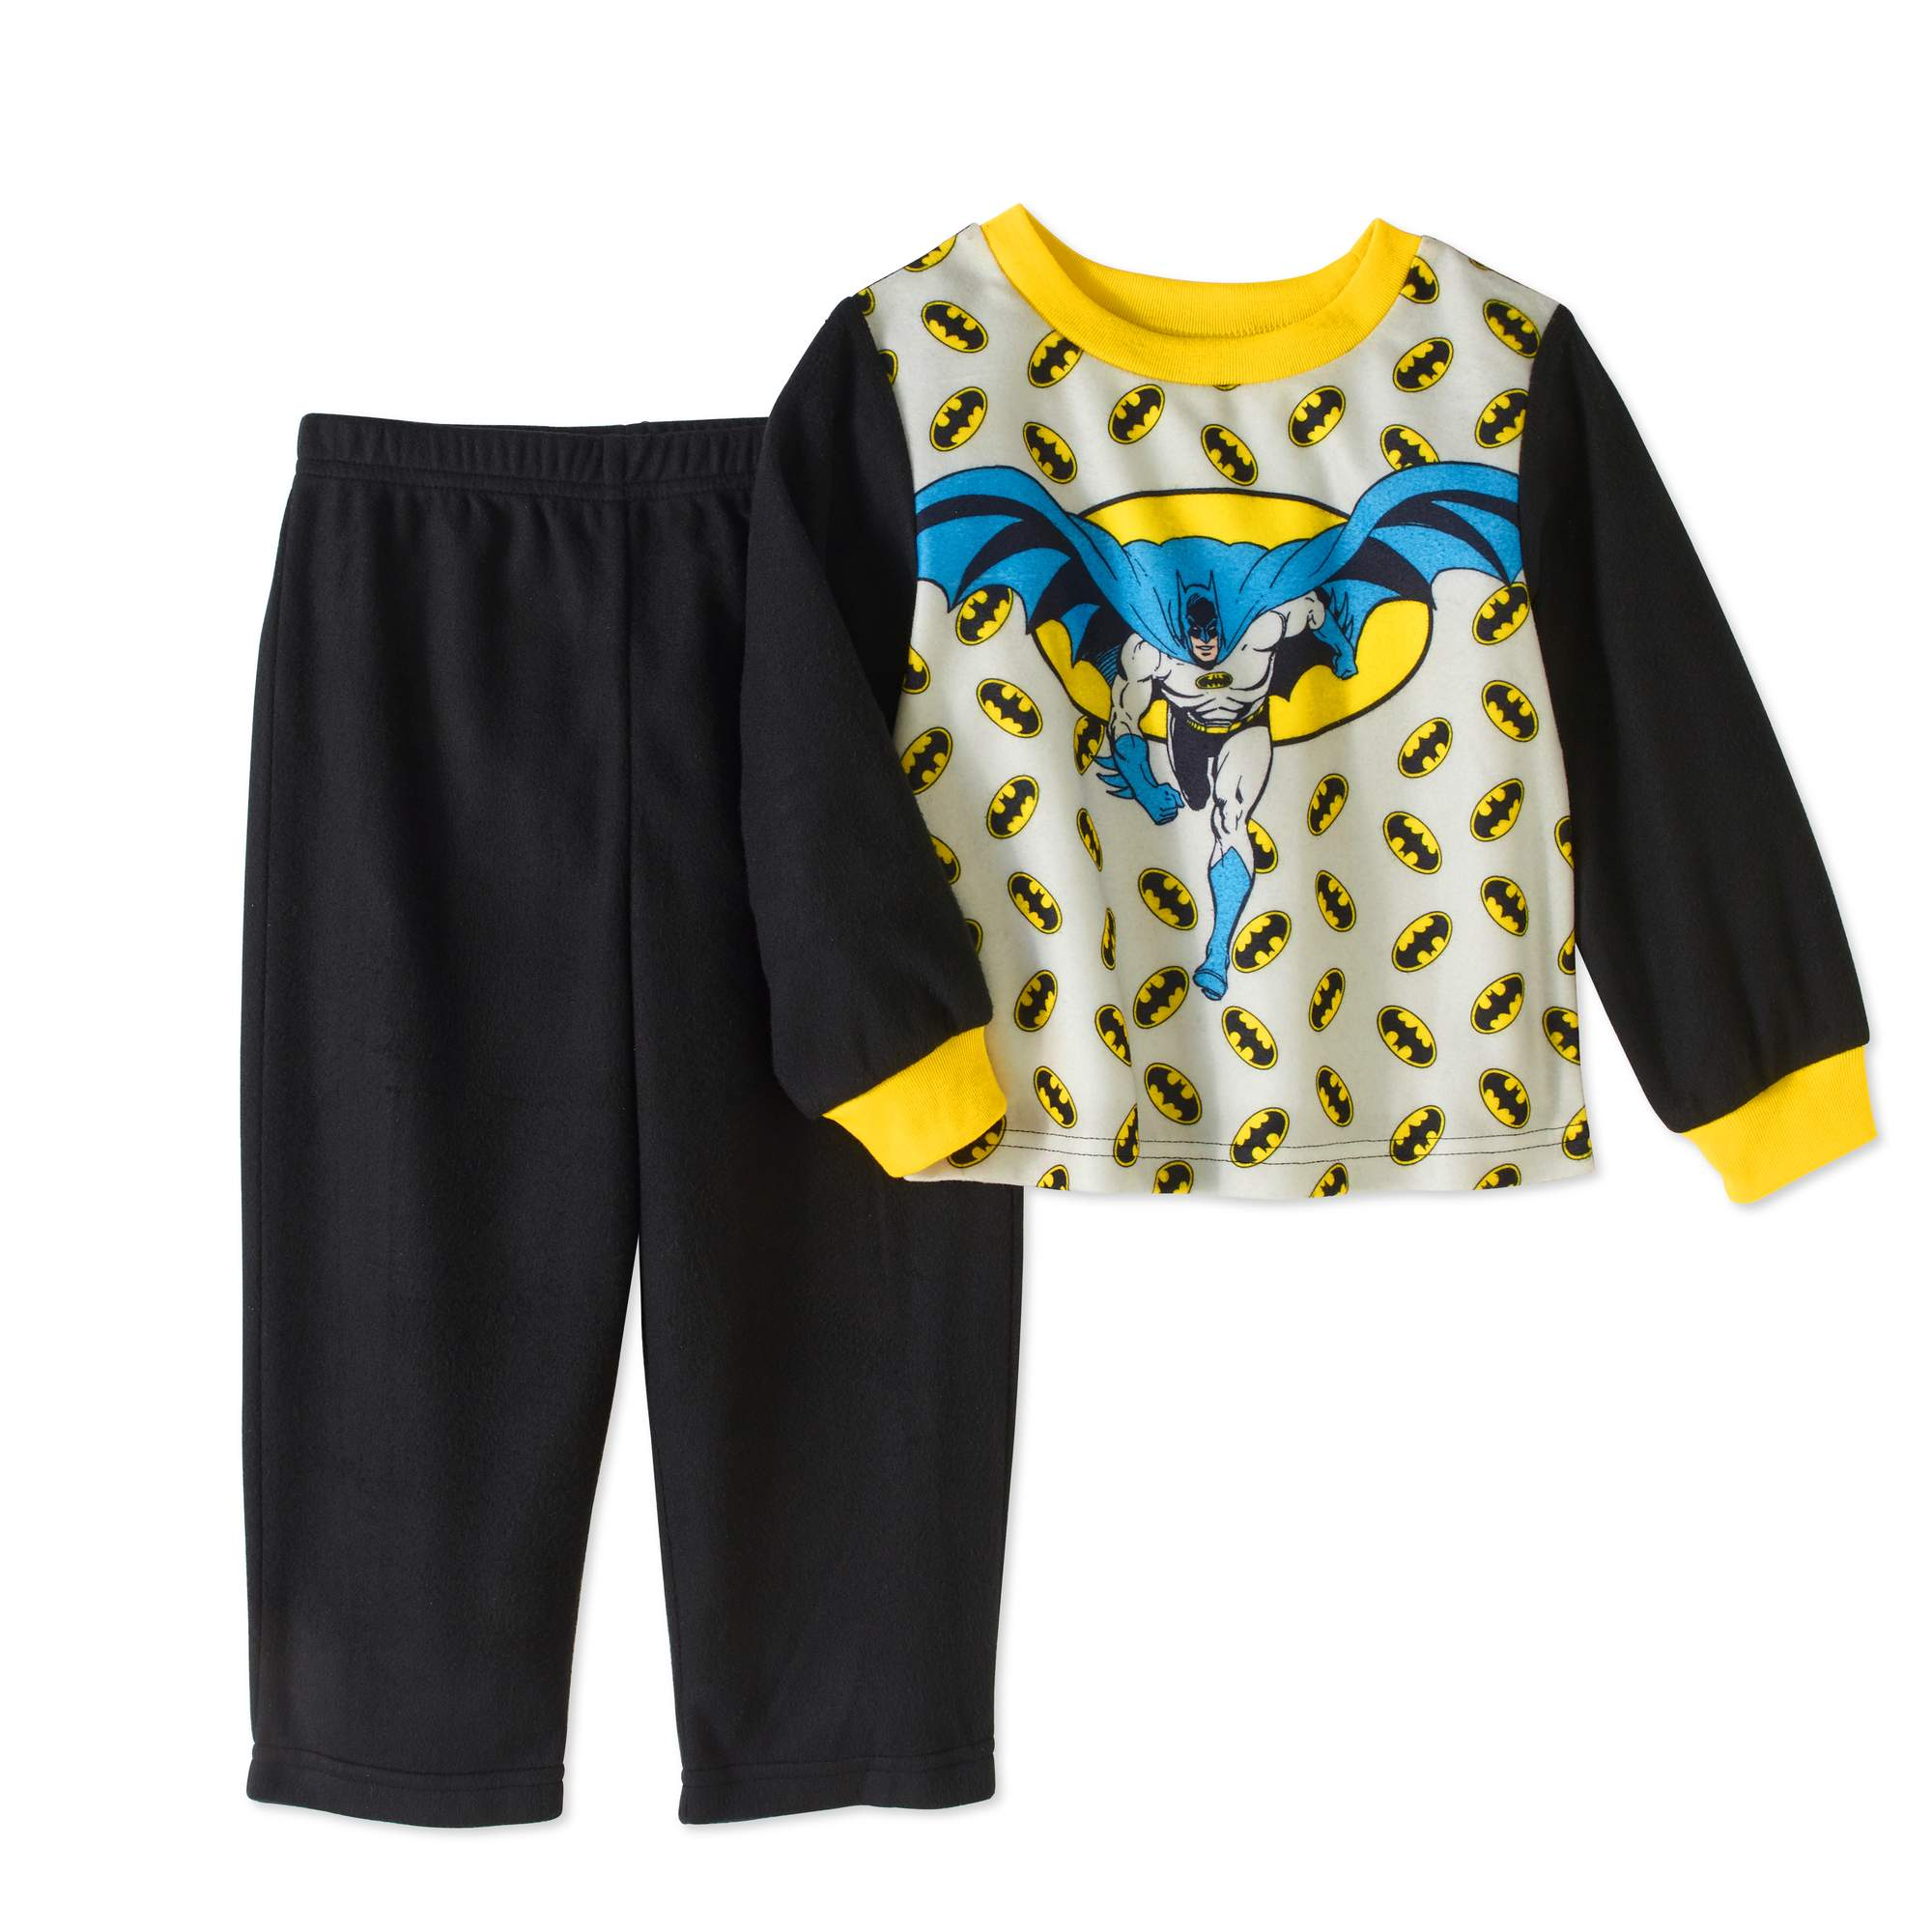 Batman Baby Toddler Boy Poly Pajama, 2pc Set by Generic